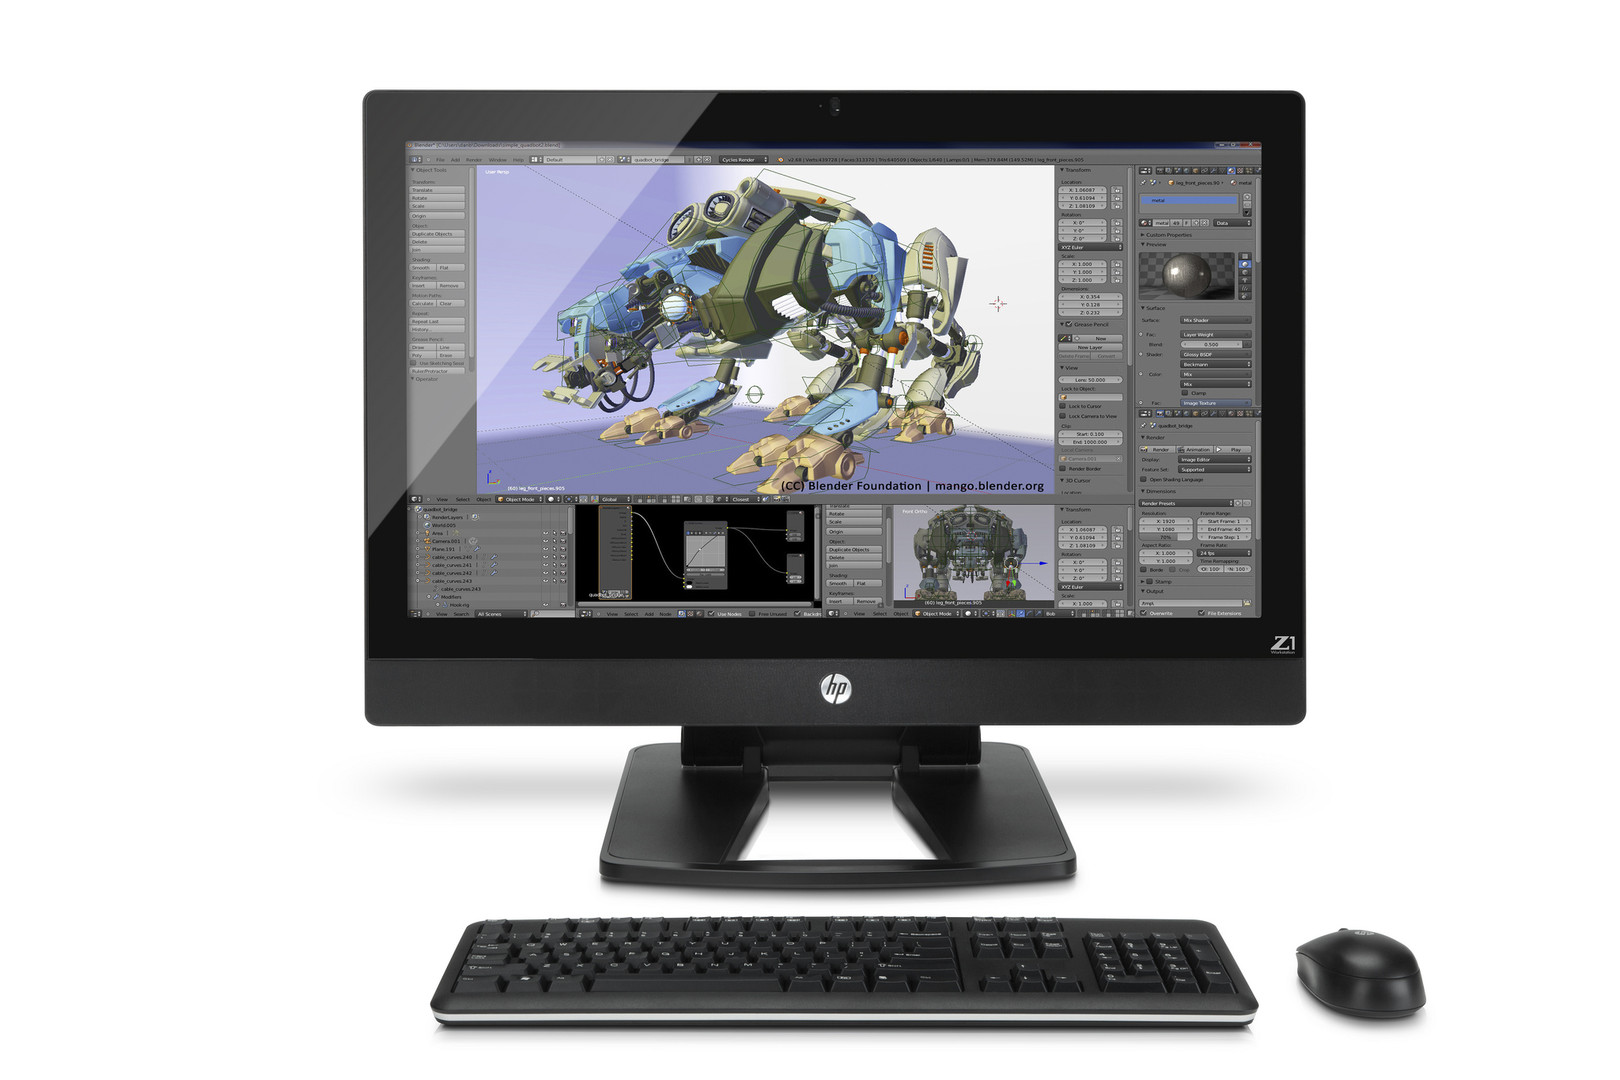 HP Z1 G2 AIO Workstation Review - NotebookCheck net Reviews